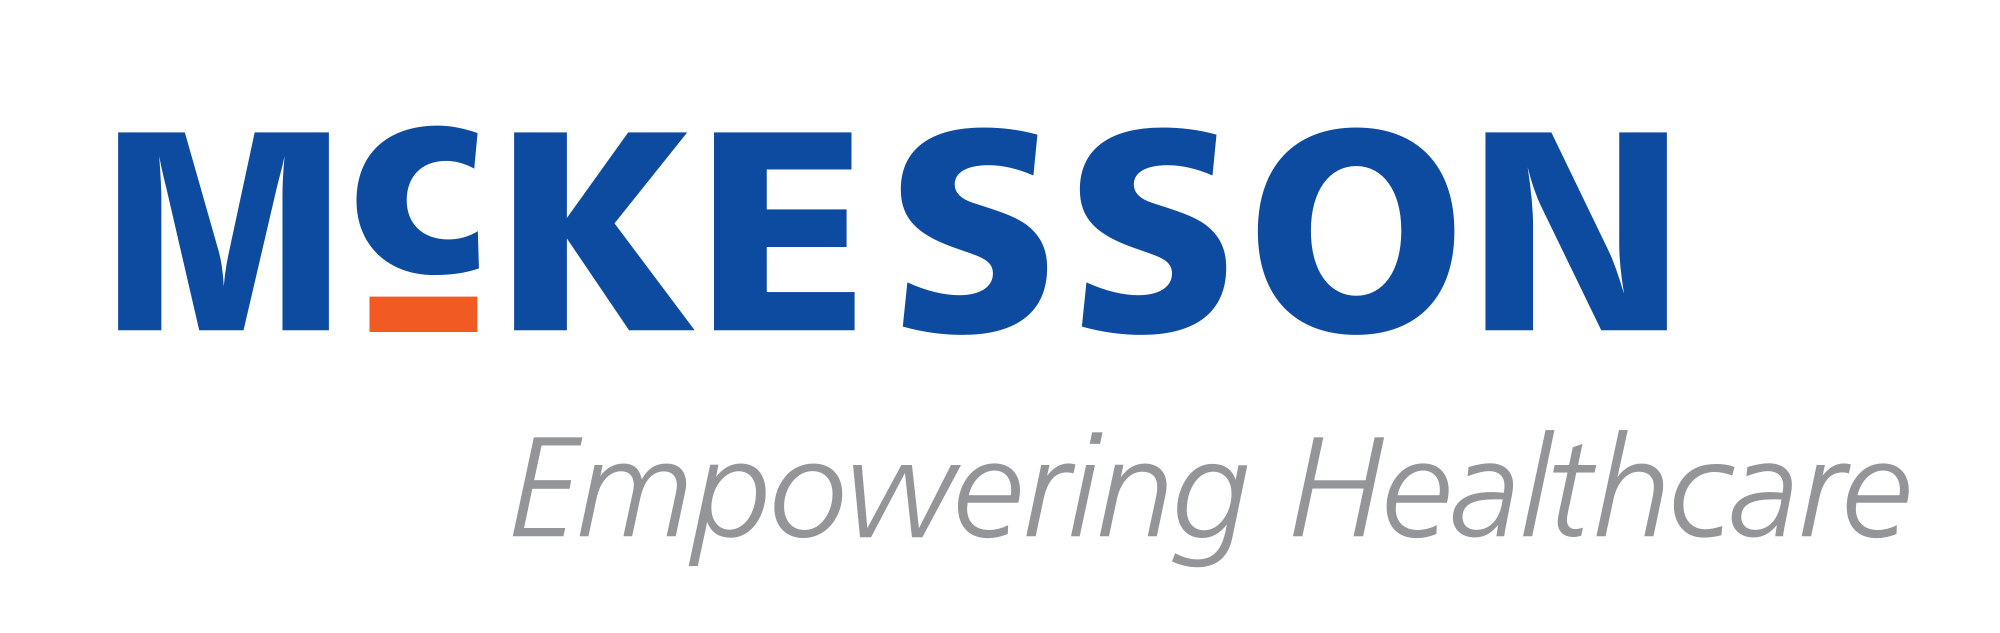 mckesson-corporation